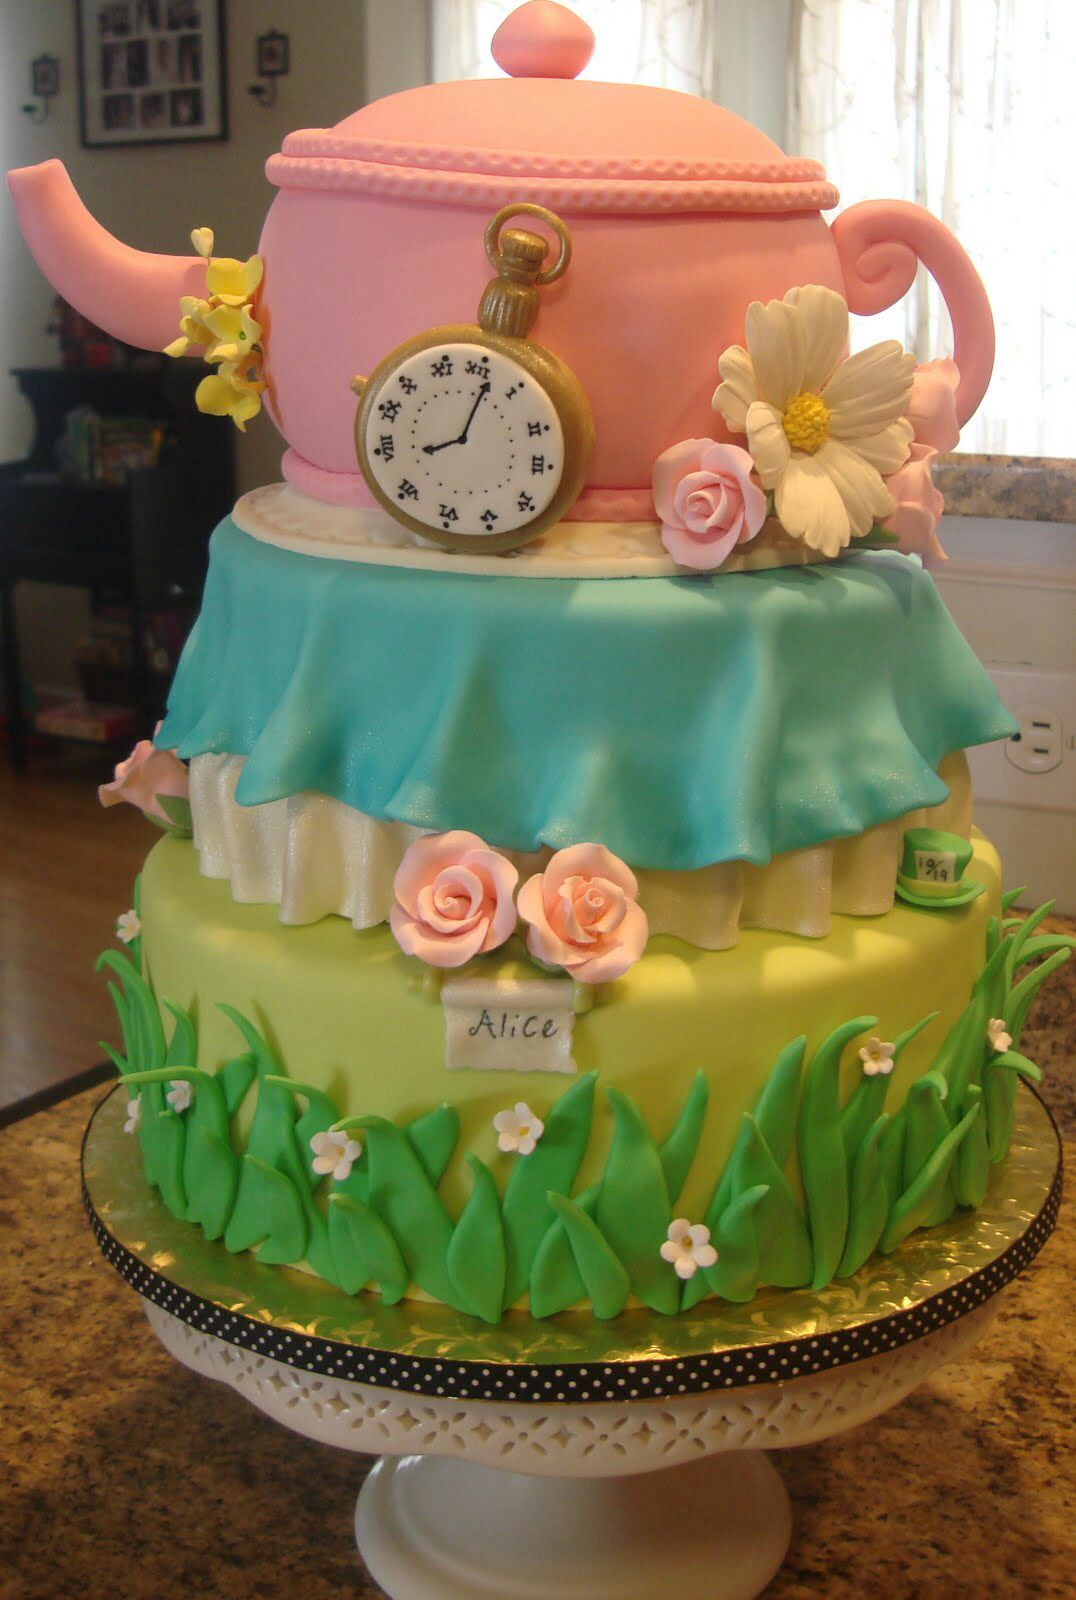 Perfect Image Detail For  Debbyu0027s Cakes: An Alice In Wonderland Inspired Baby  Shower Cake